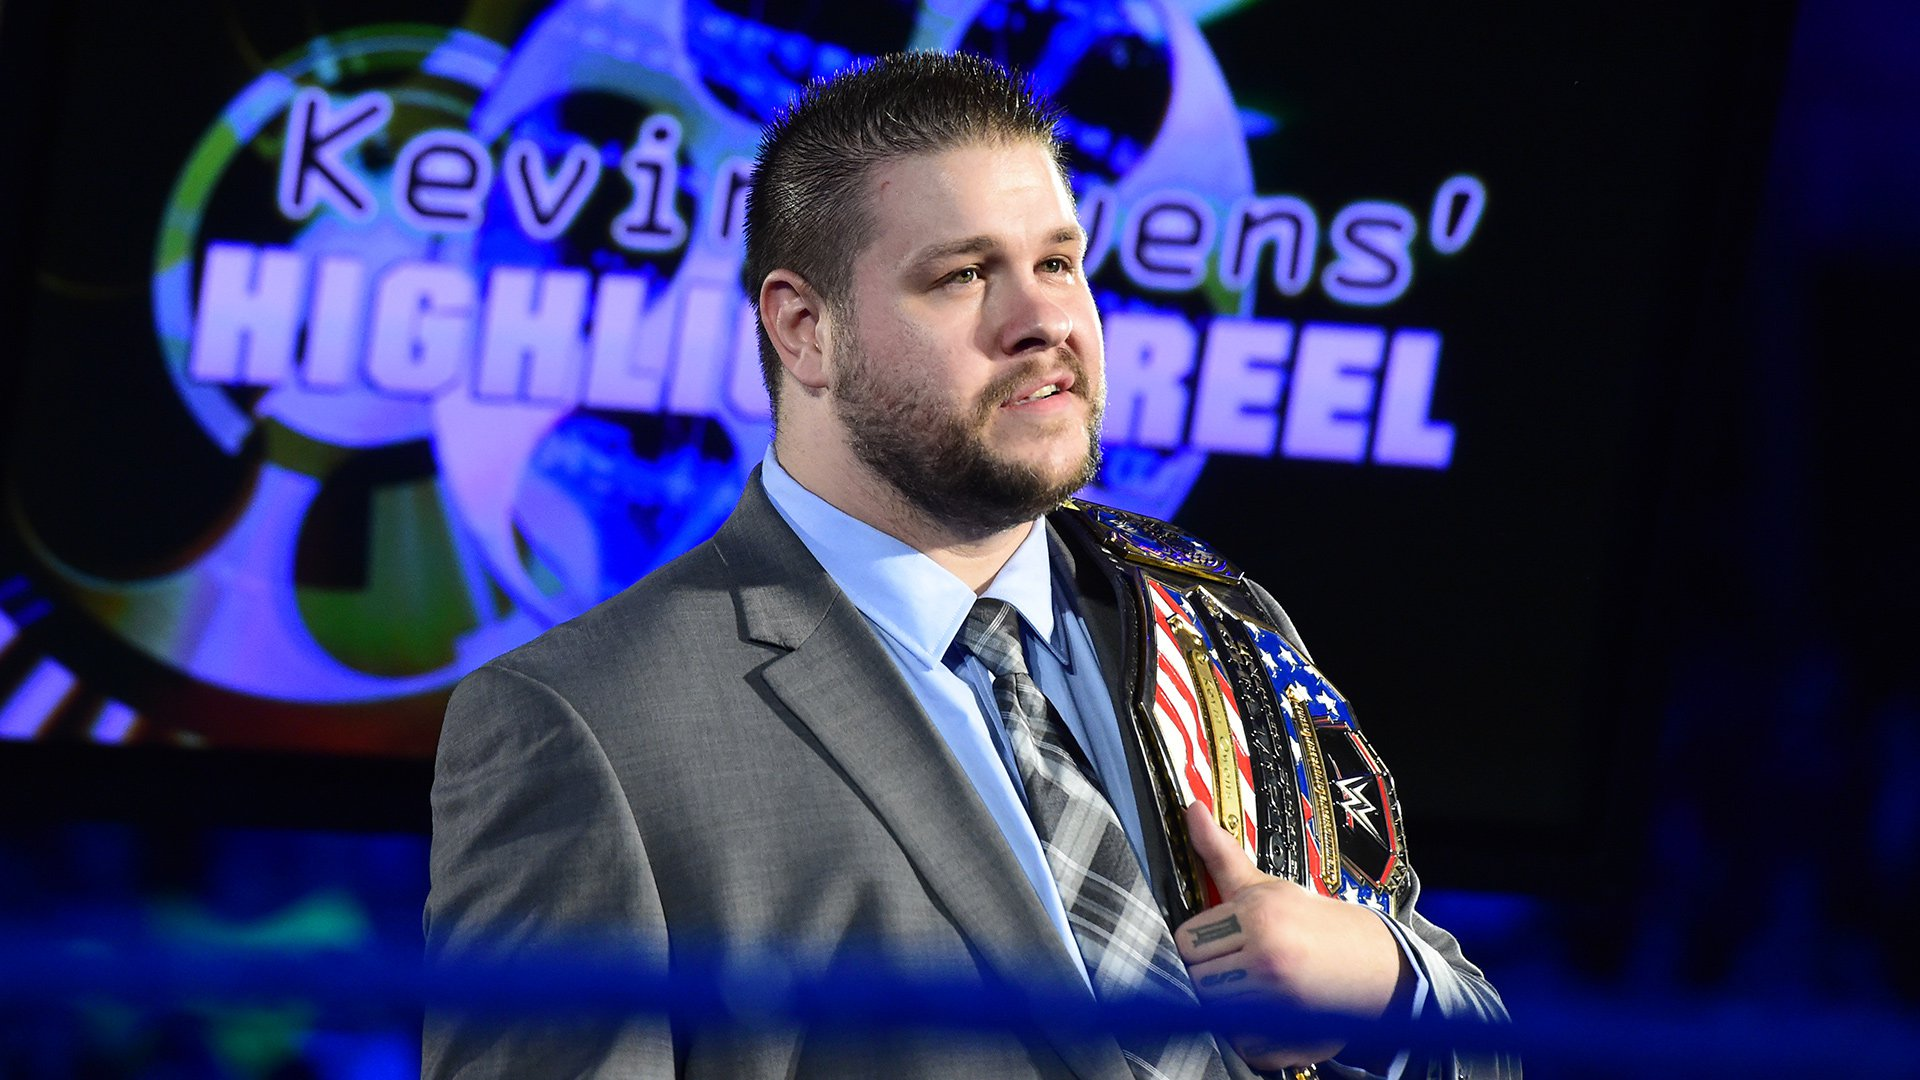 Kevin Owens kicks off SmackDown LIVE as the apparent new host of Chris Jericho's Highlight Reel.